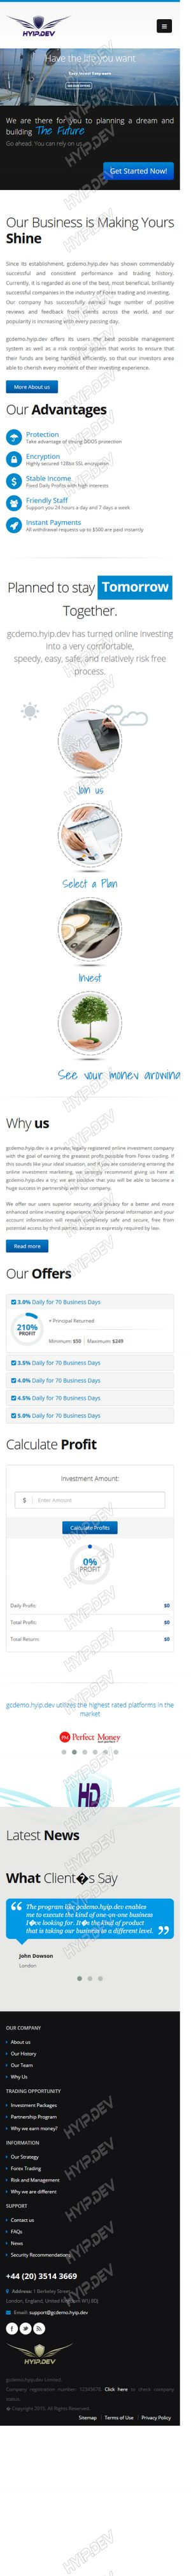 goldcoders hyip template no. 092, responsive page screenshot